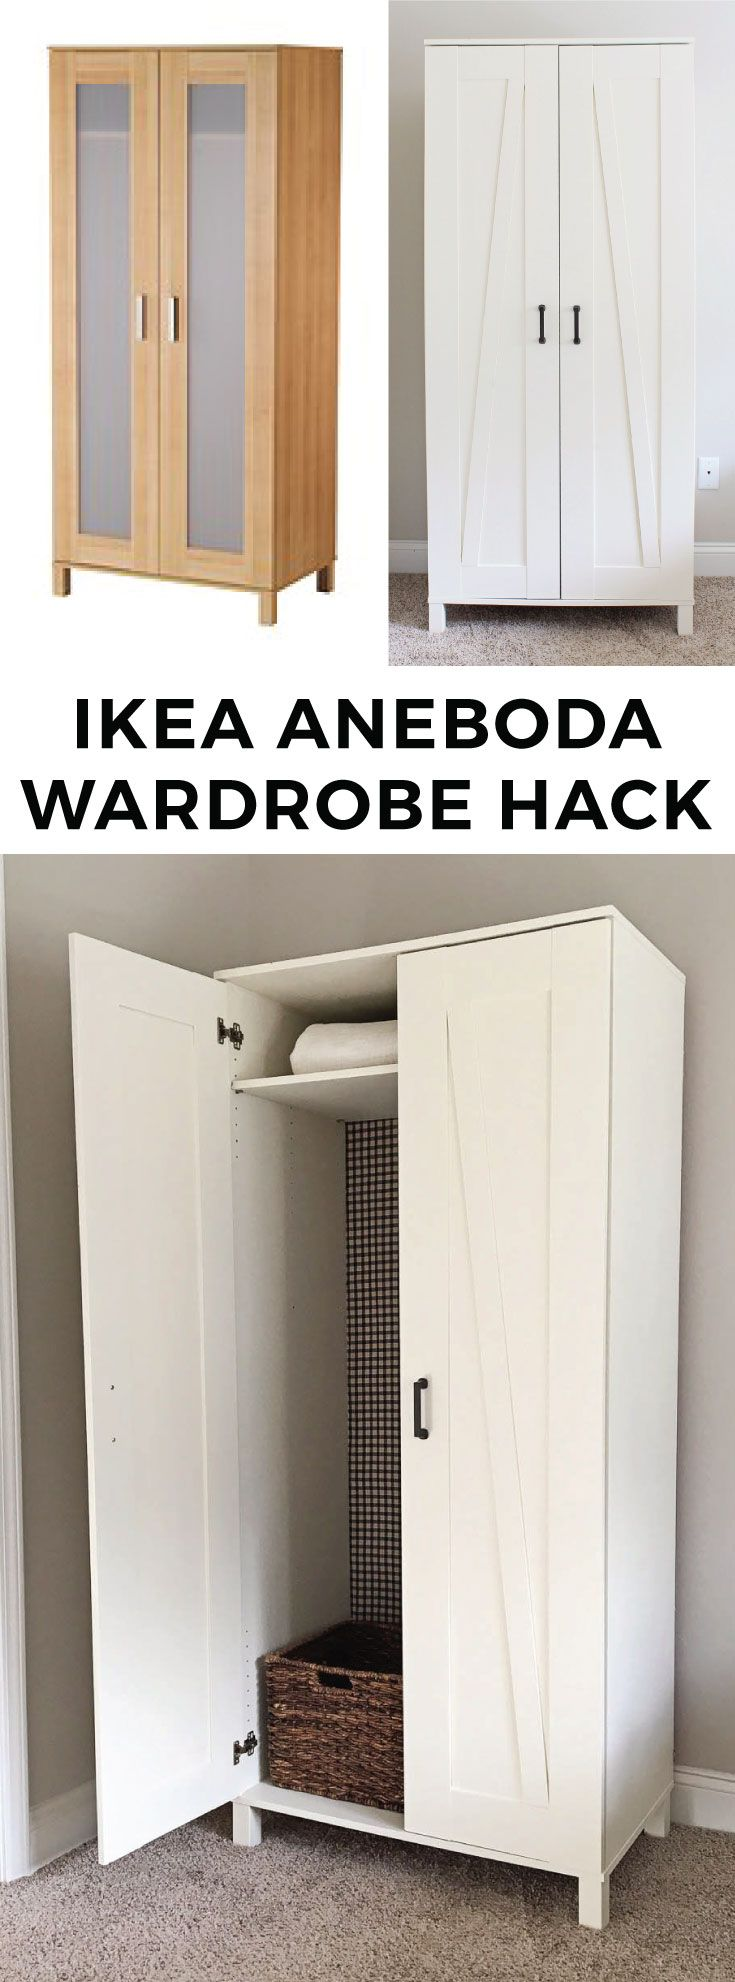 Folding Tv Dinner Table Ikea ~ DIY IKEA Hack Farmhouse style wardrobe from the IKEA Aneboda Wardrobe